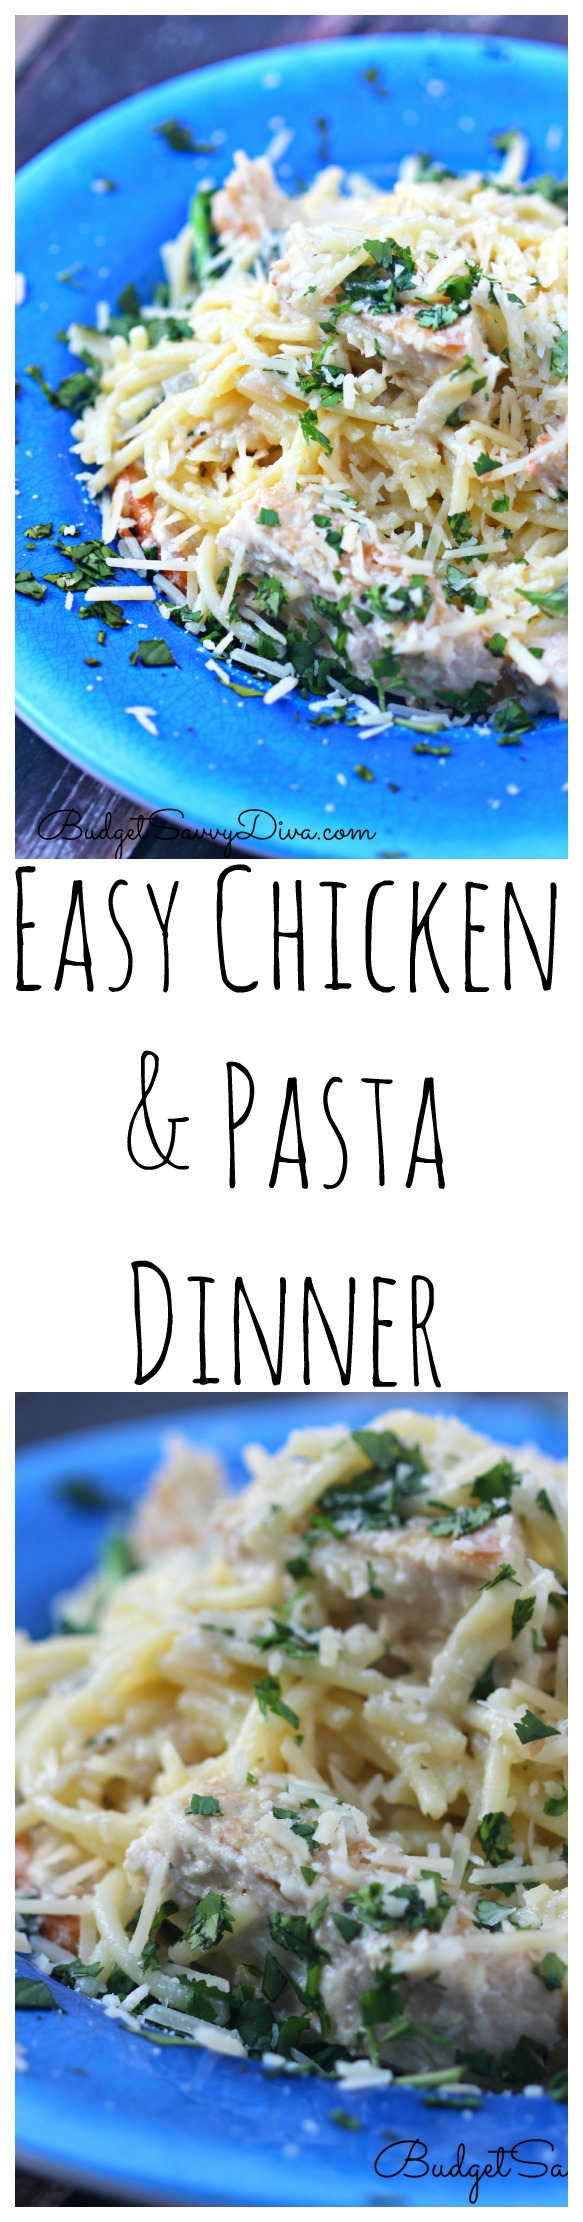 Easy Chicken and Pasta Dinner Recipe